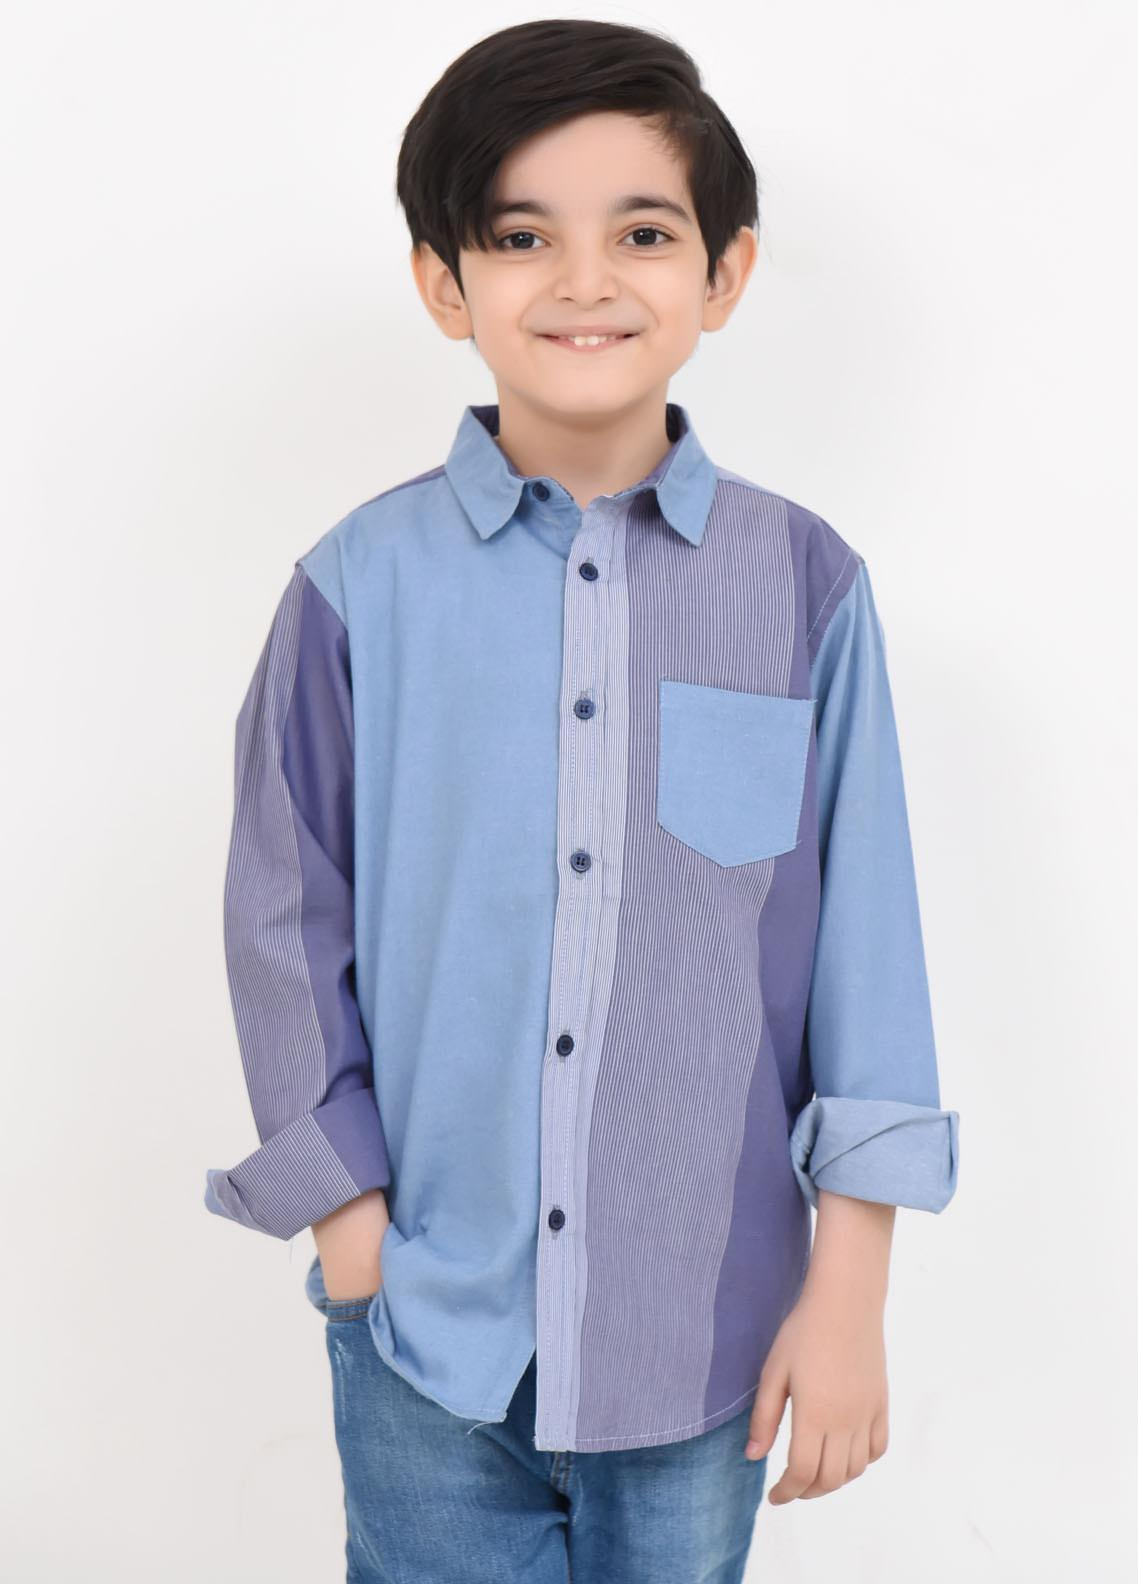 Ochre Cotton Casual Shirts for Boys -  OBS-25 Black